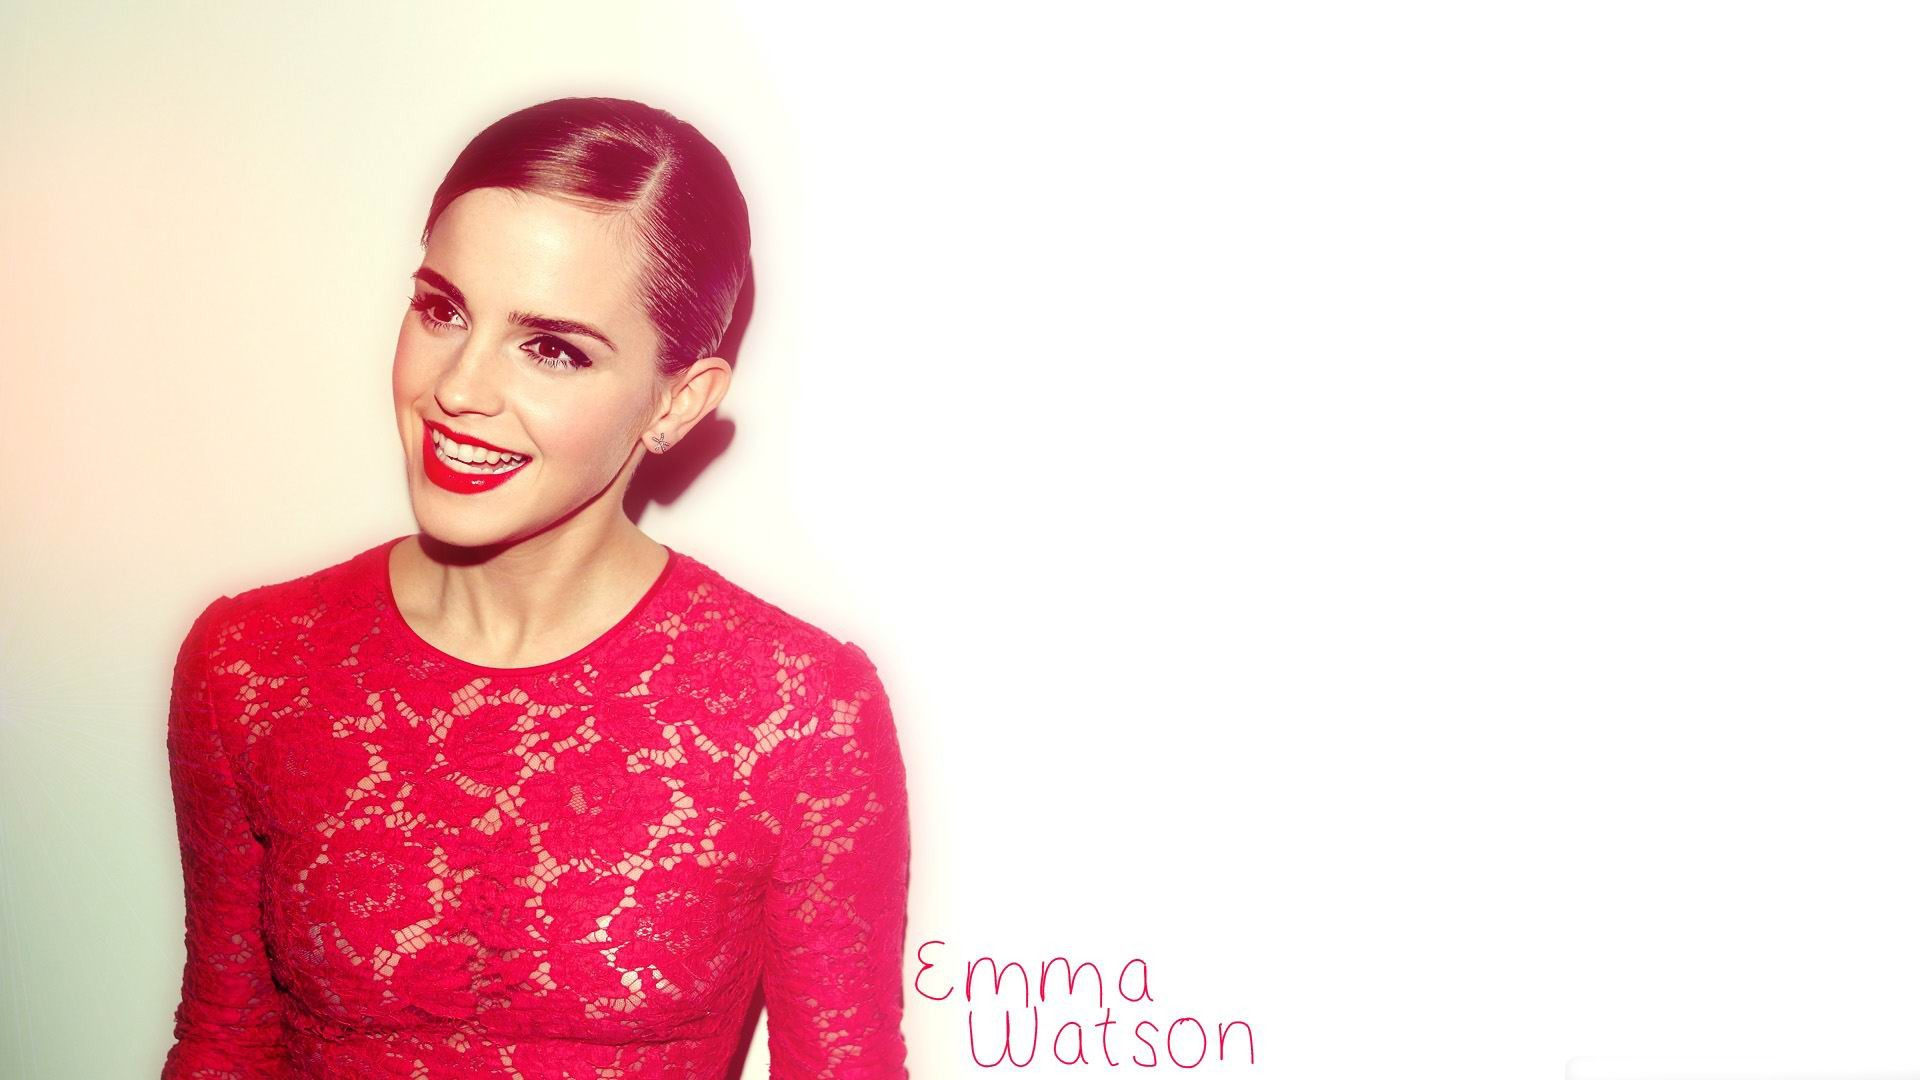 Emma watson red dress movie star hd wallpaper 1920x1080 - Emma watson wallpaper free download ...